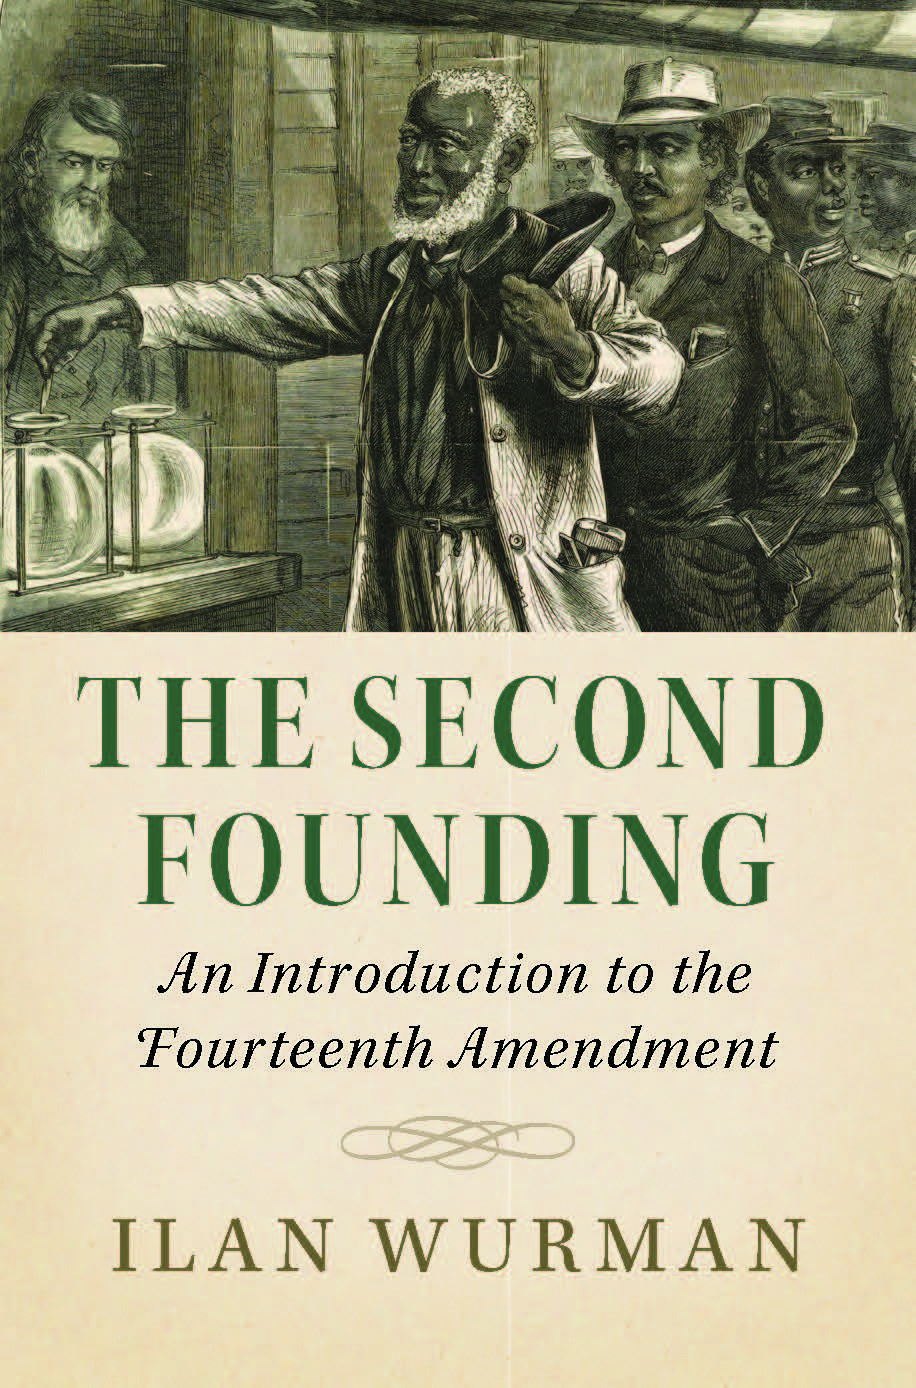 Book Review: The Second Founding: An Introduction to the Fourteenth Amendment